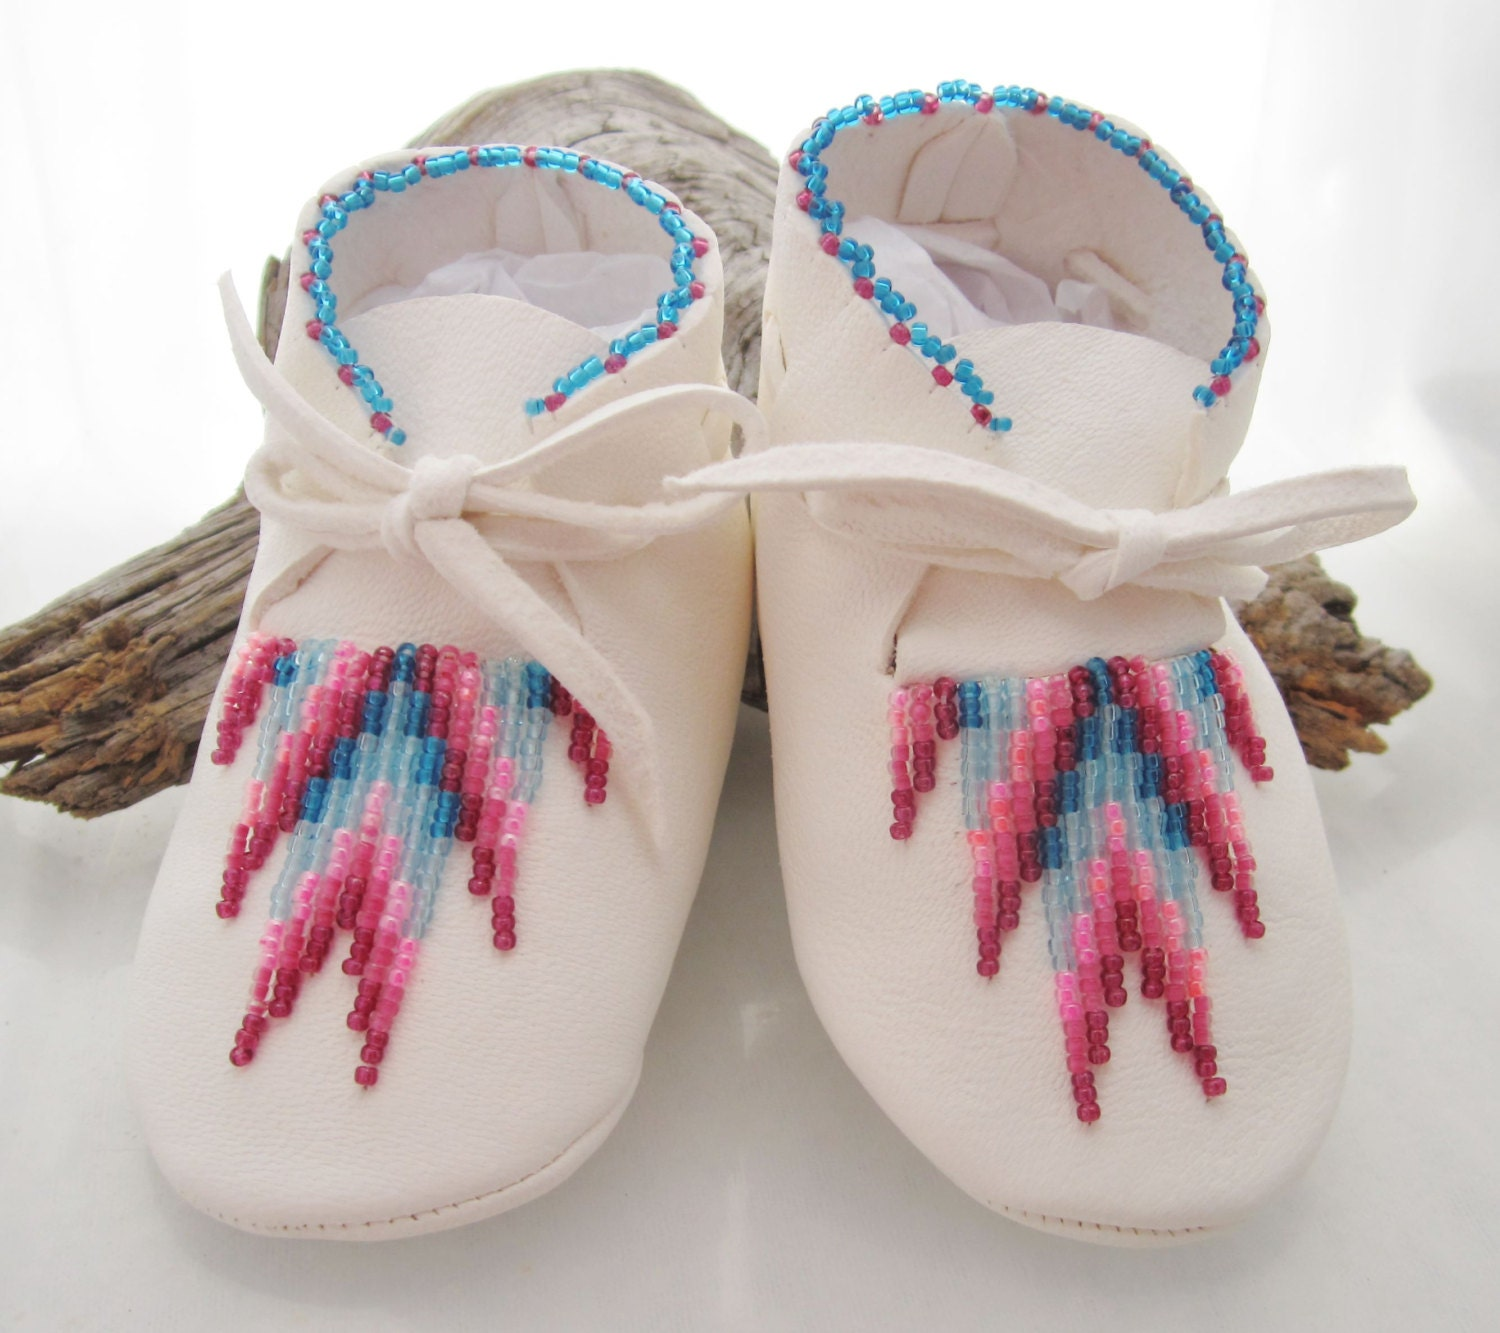 Hand Beaded White Leather Baby Moccasins and Soft Soled Shoes